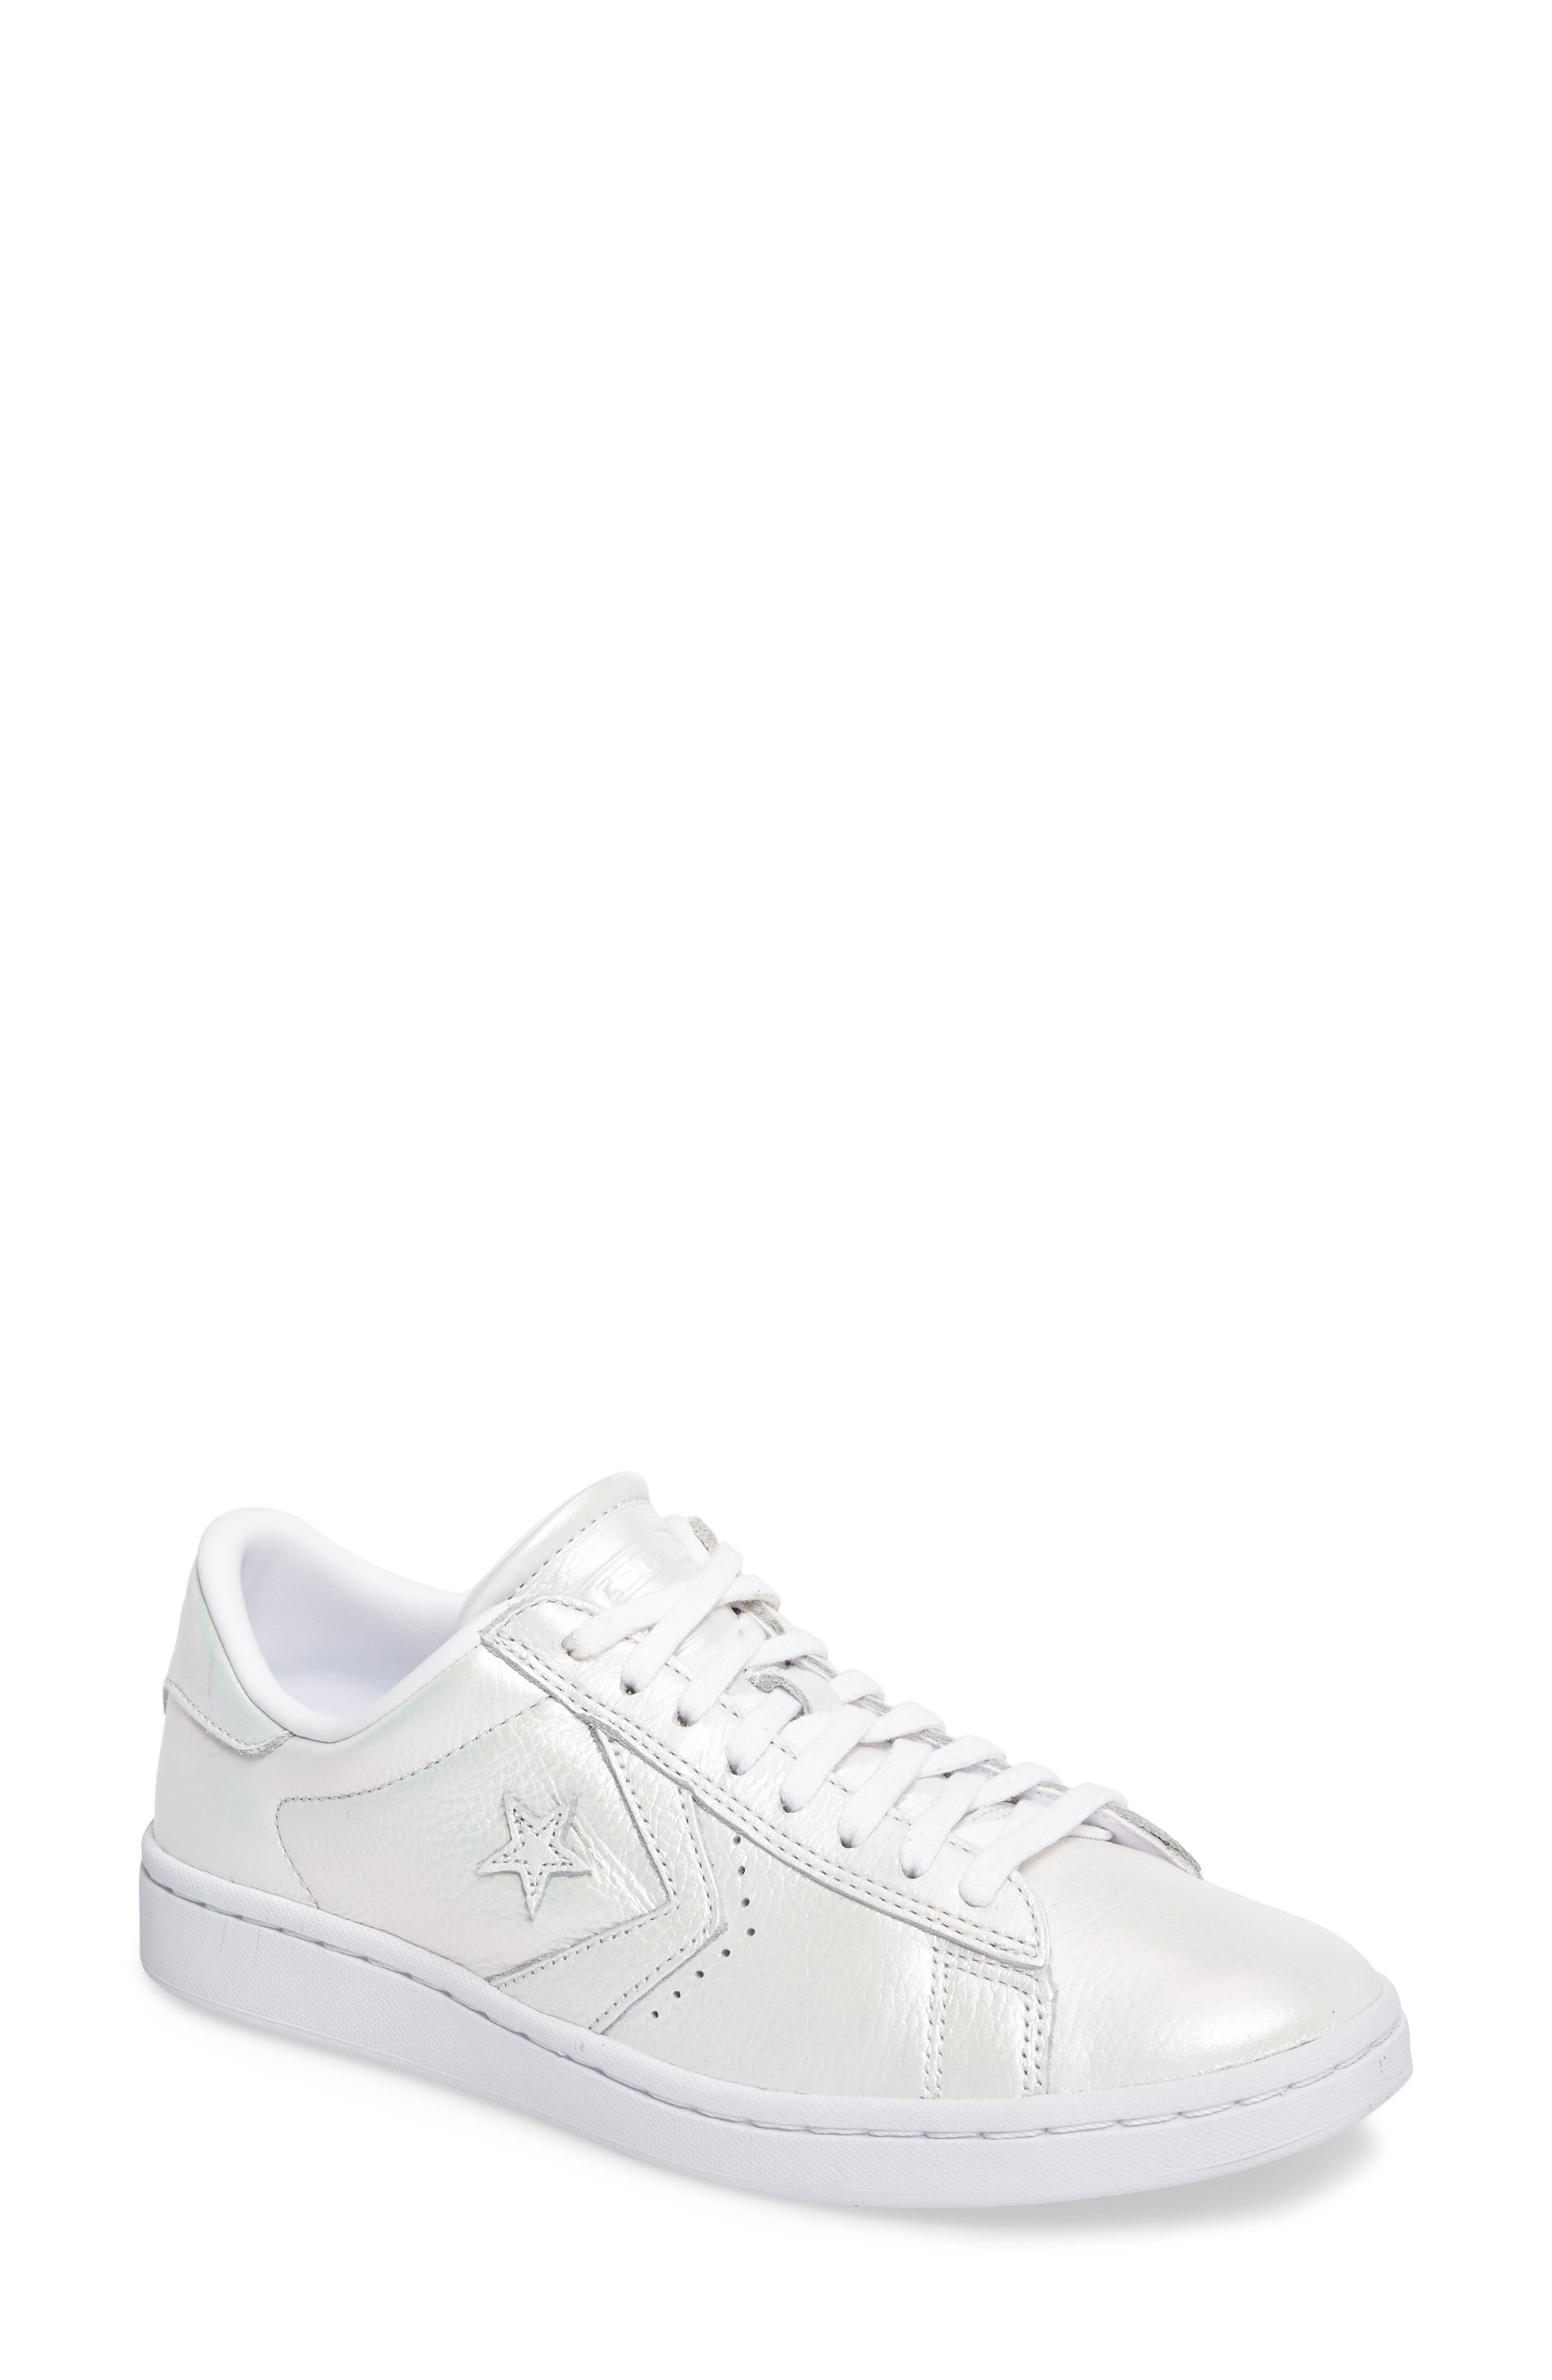 Pro Leather LP Sneaker,                             Main thumbnail 1, color,                             White Leather